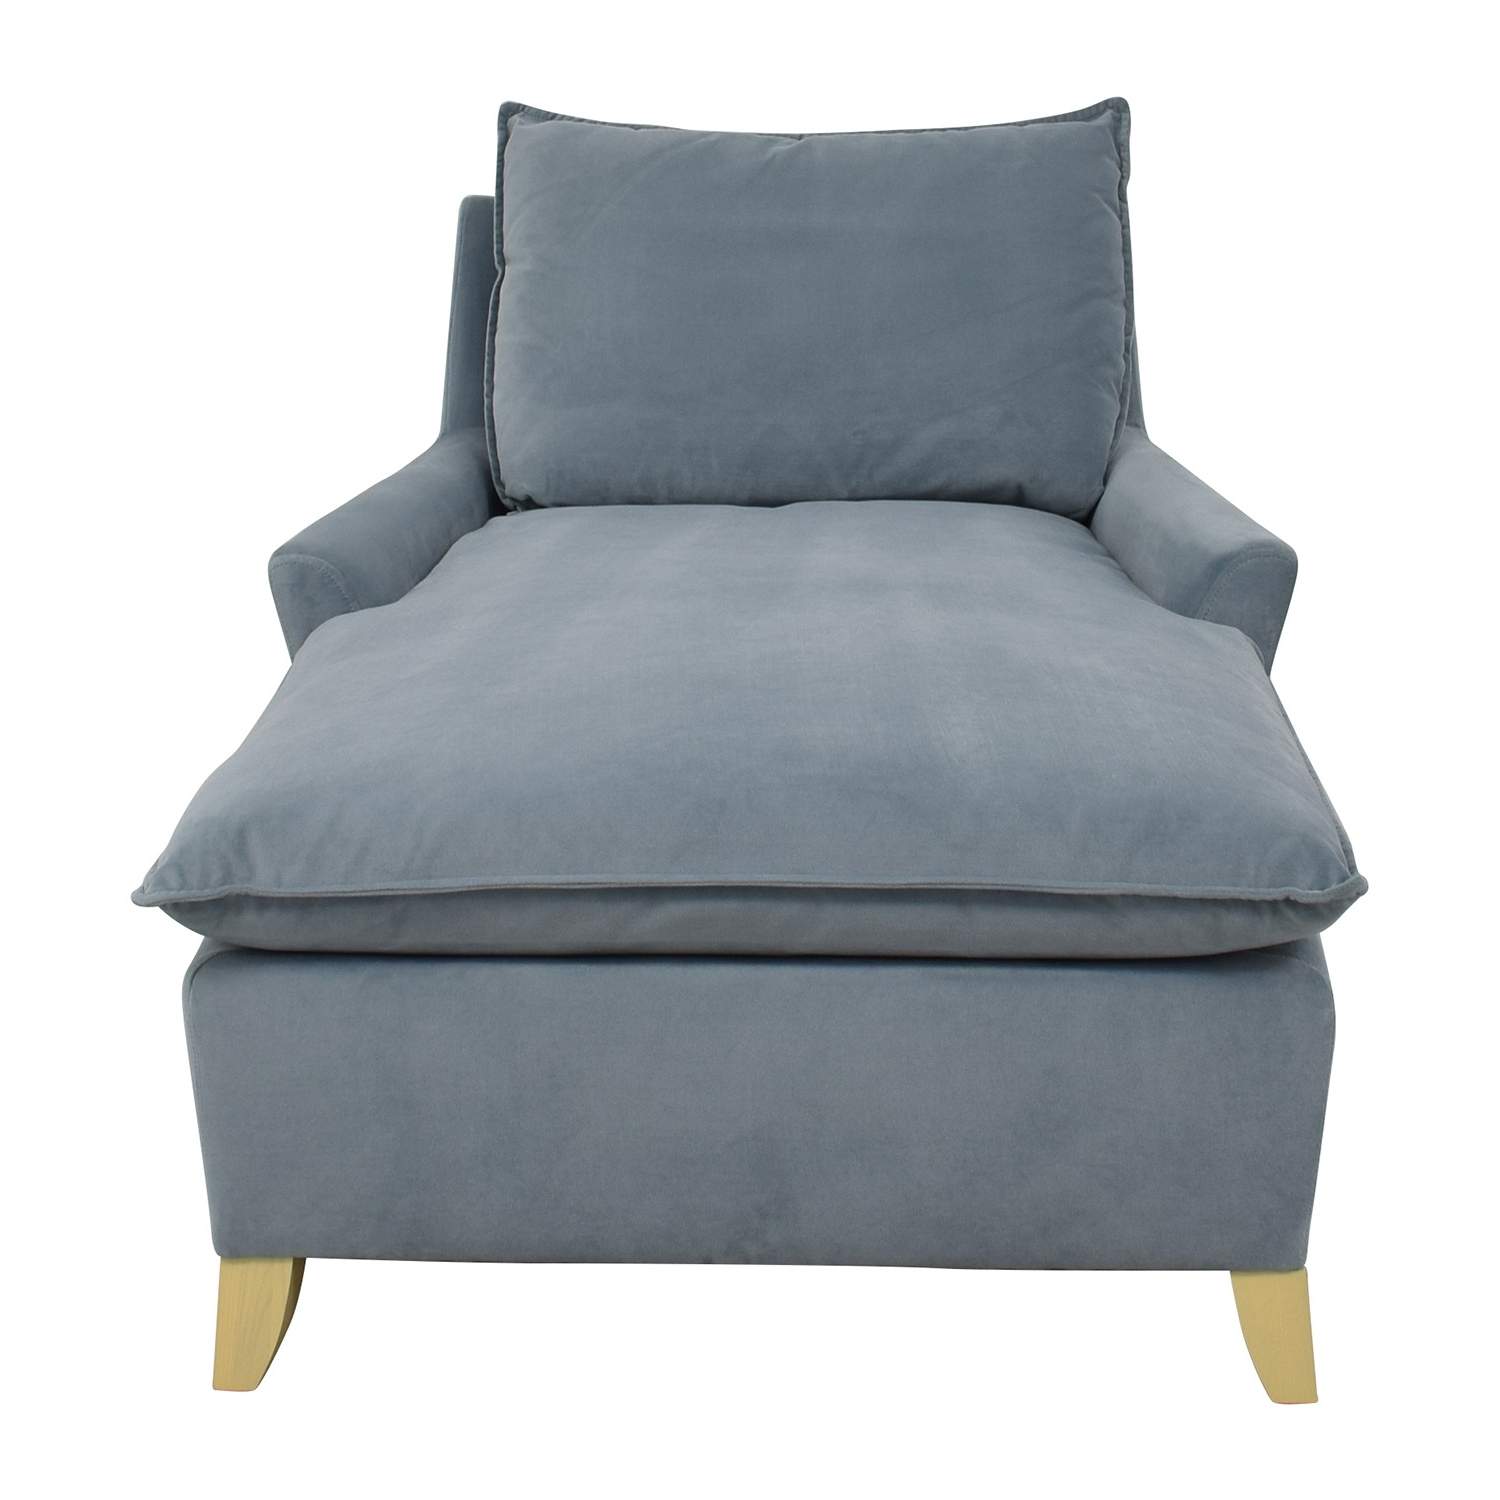 [%72% Off – West Elm West Elm Bliss Steel Blue Velvet Lounge Chaise Inside Most Current West Elm Chaises|West Elm Chaises Pertaining To Best And Newest 72% Off – West Elm West Elm Bliss Steel Blue Velvet Lounge Chaise|Well Liked West Elm Chaises Inside 72% Off – West Elm West Elm Bliss Steel Blue Velvet Lounge Chaise|Best And Newest 72% Off – West Elm West Elm Bliss Steel Blue Velvet Lounge Chaise Within West Elm Chaises%] (View 8 of 15)